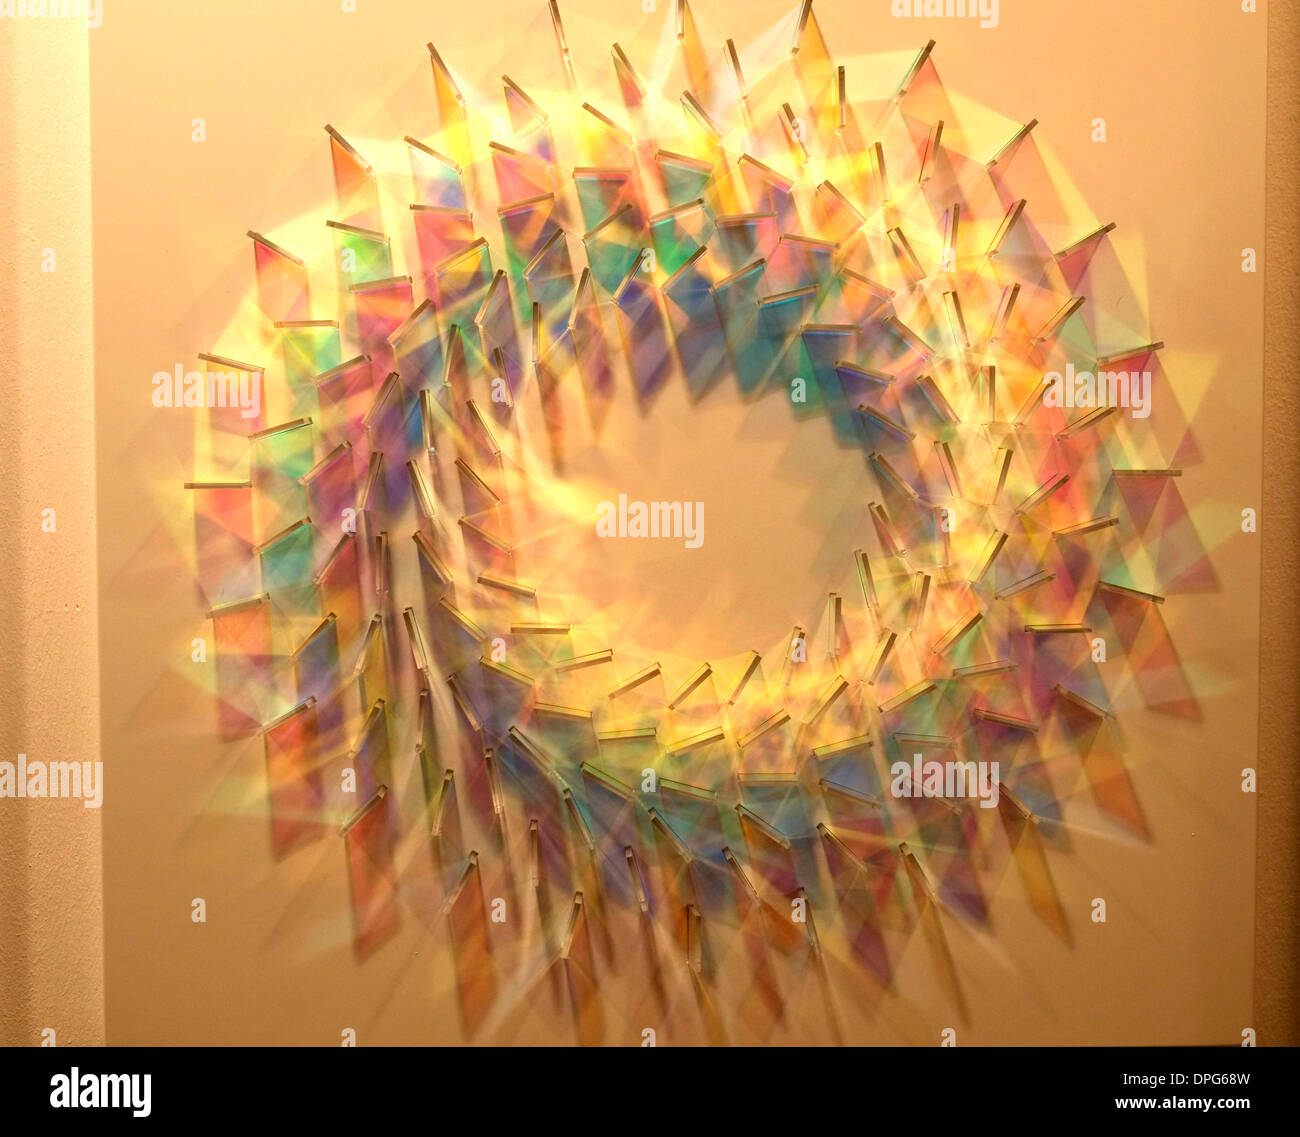 Dichroic Glass Stock Photos & Dichroic Glass Stock Images - Alamy